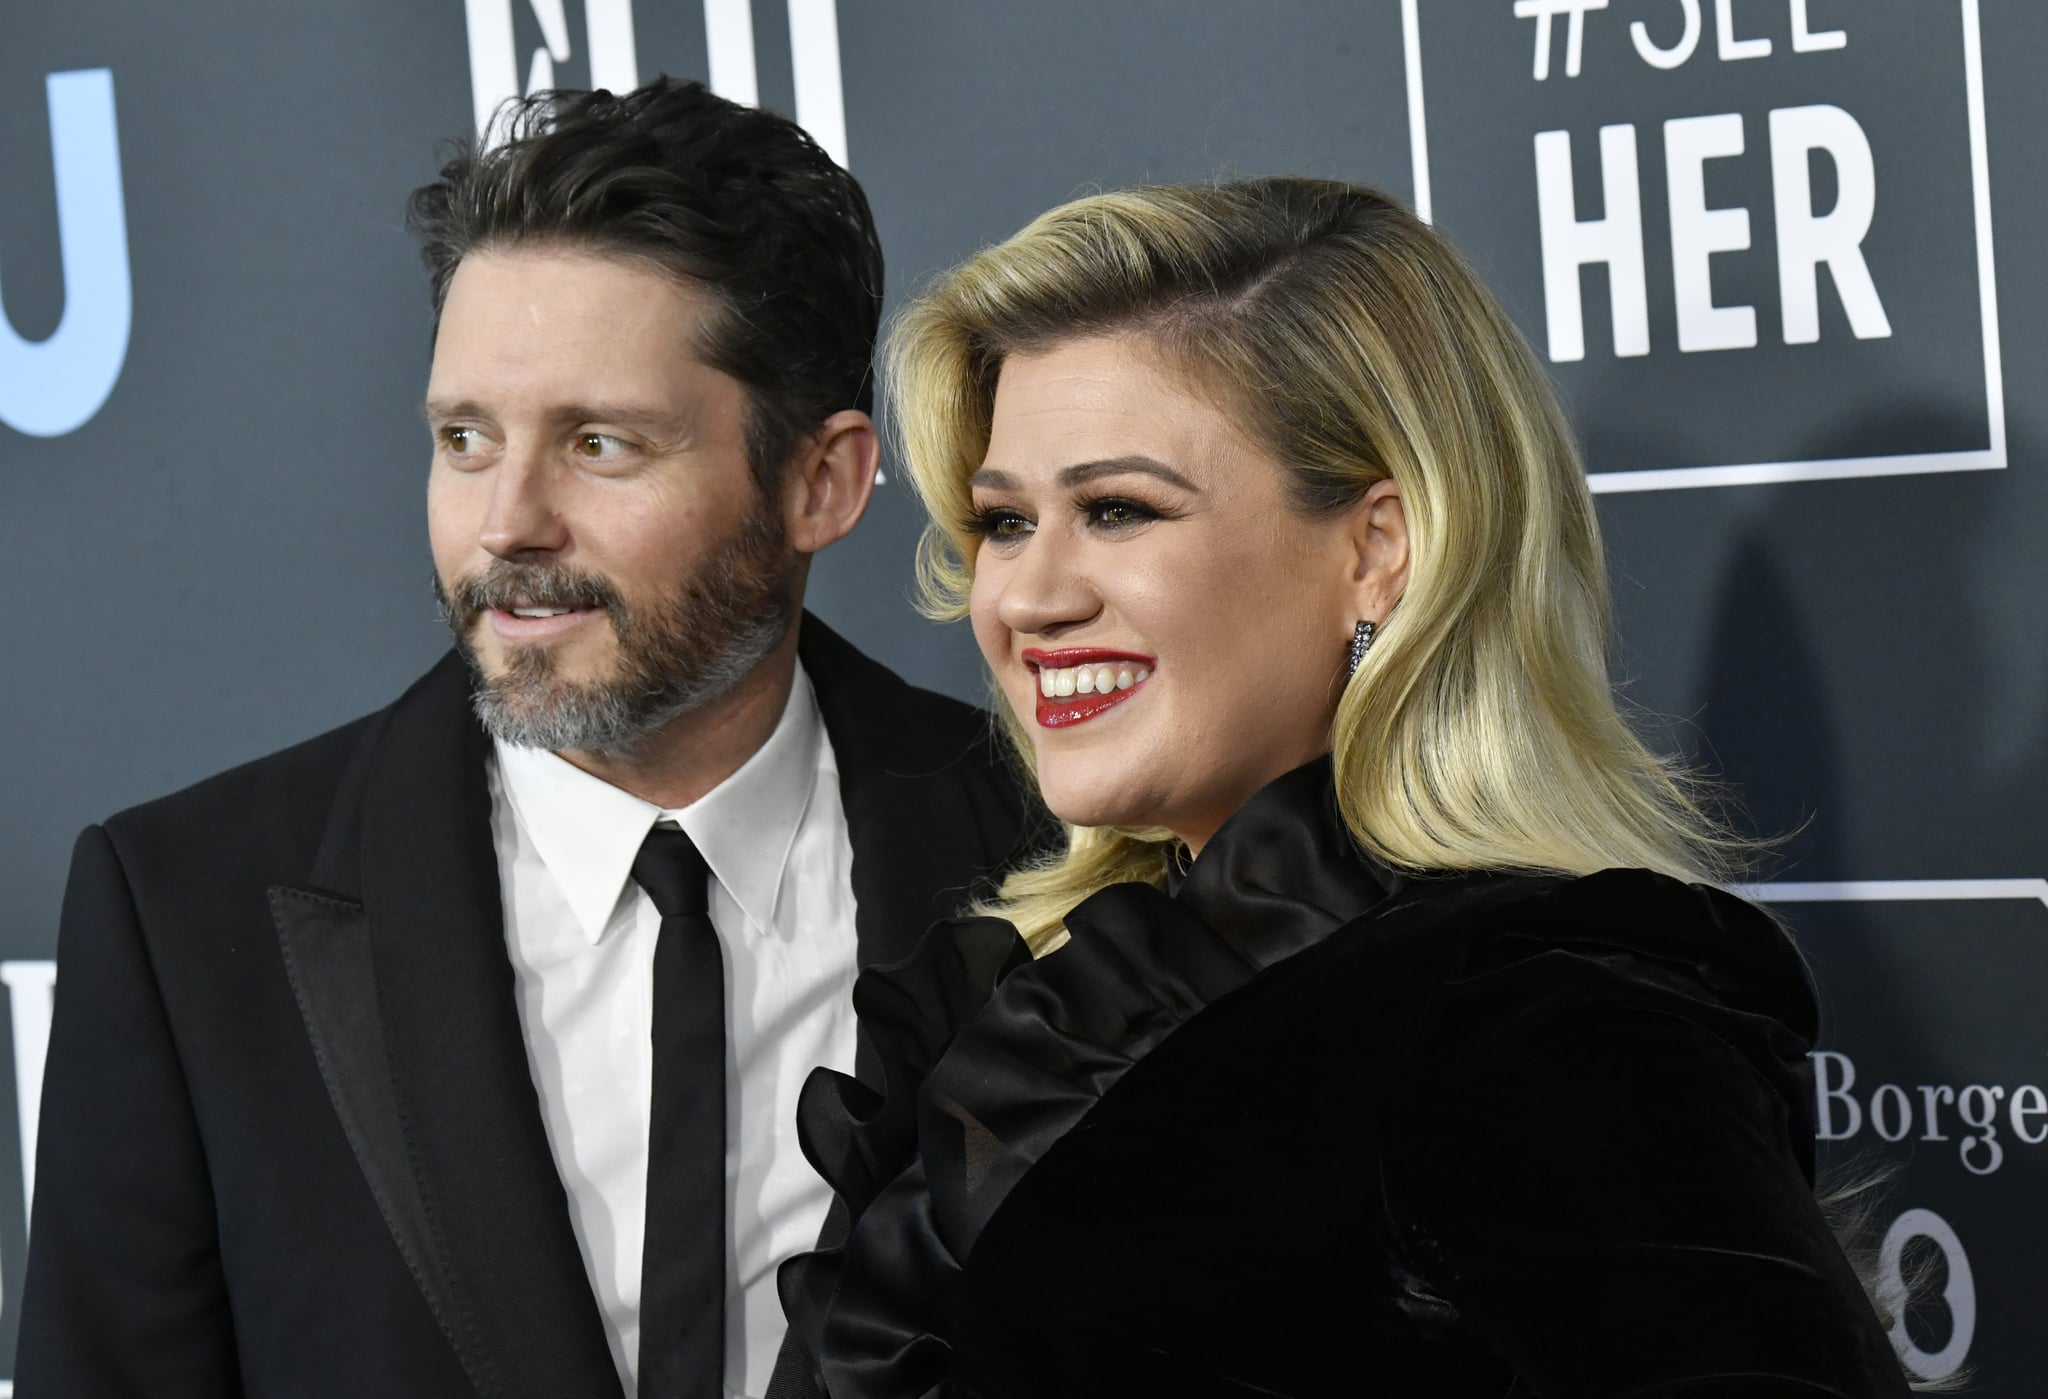 SANTA MONICA, CALIFORNIA - JANUARY 12: (L-R) Brandon Blackstock and Kelly Clarkson attend the 25th Annual Critics' Choice Awards at Barker Hangar on January 12, 2020 in Santa Monica, California. (Photo by Frazer Harrison/Getty Images)